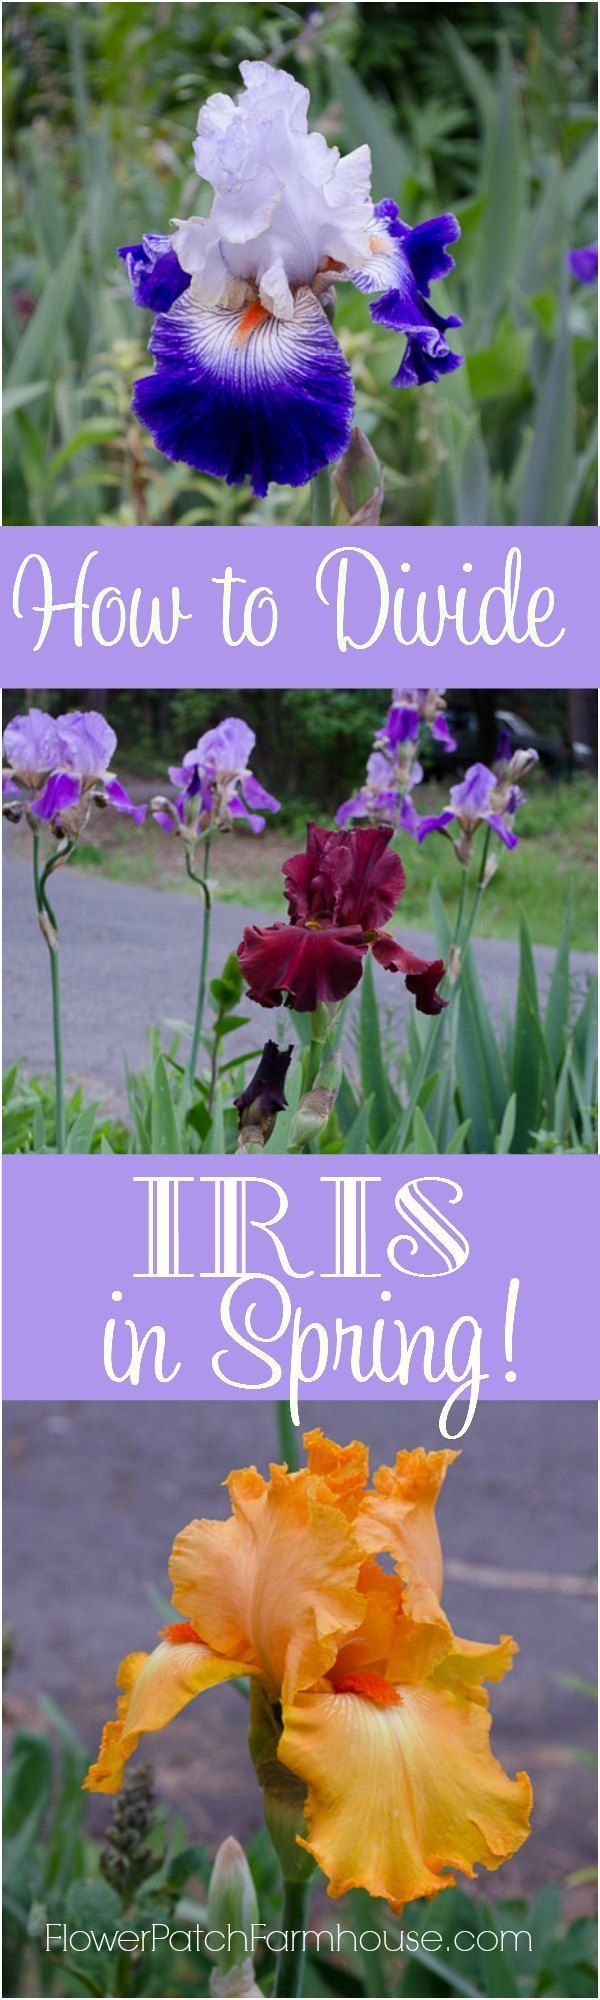 How to Divide Iris in Spring successfully and not lose a bloom. I do it all the time and have been 100% successful. Come read about my out of the box gardening style! http://FlowerPatchFarmhouse.com